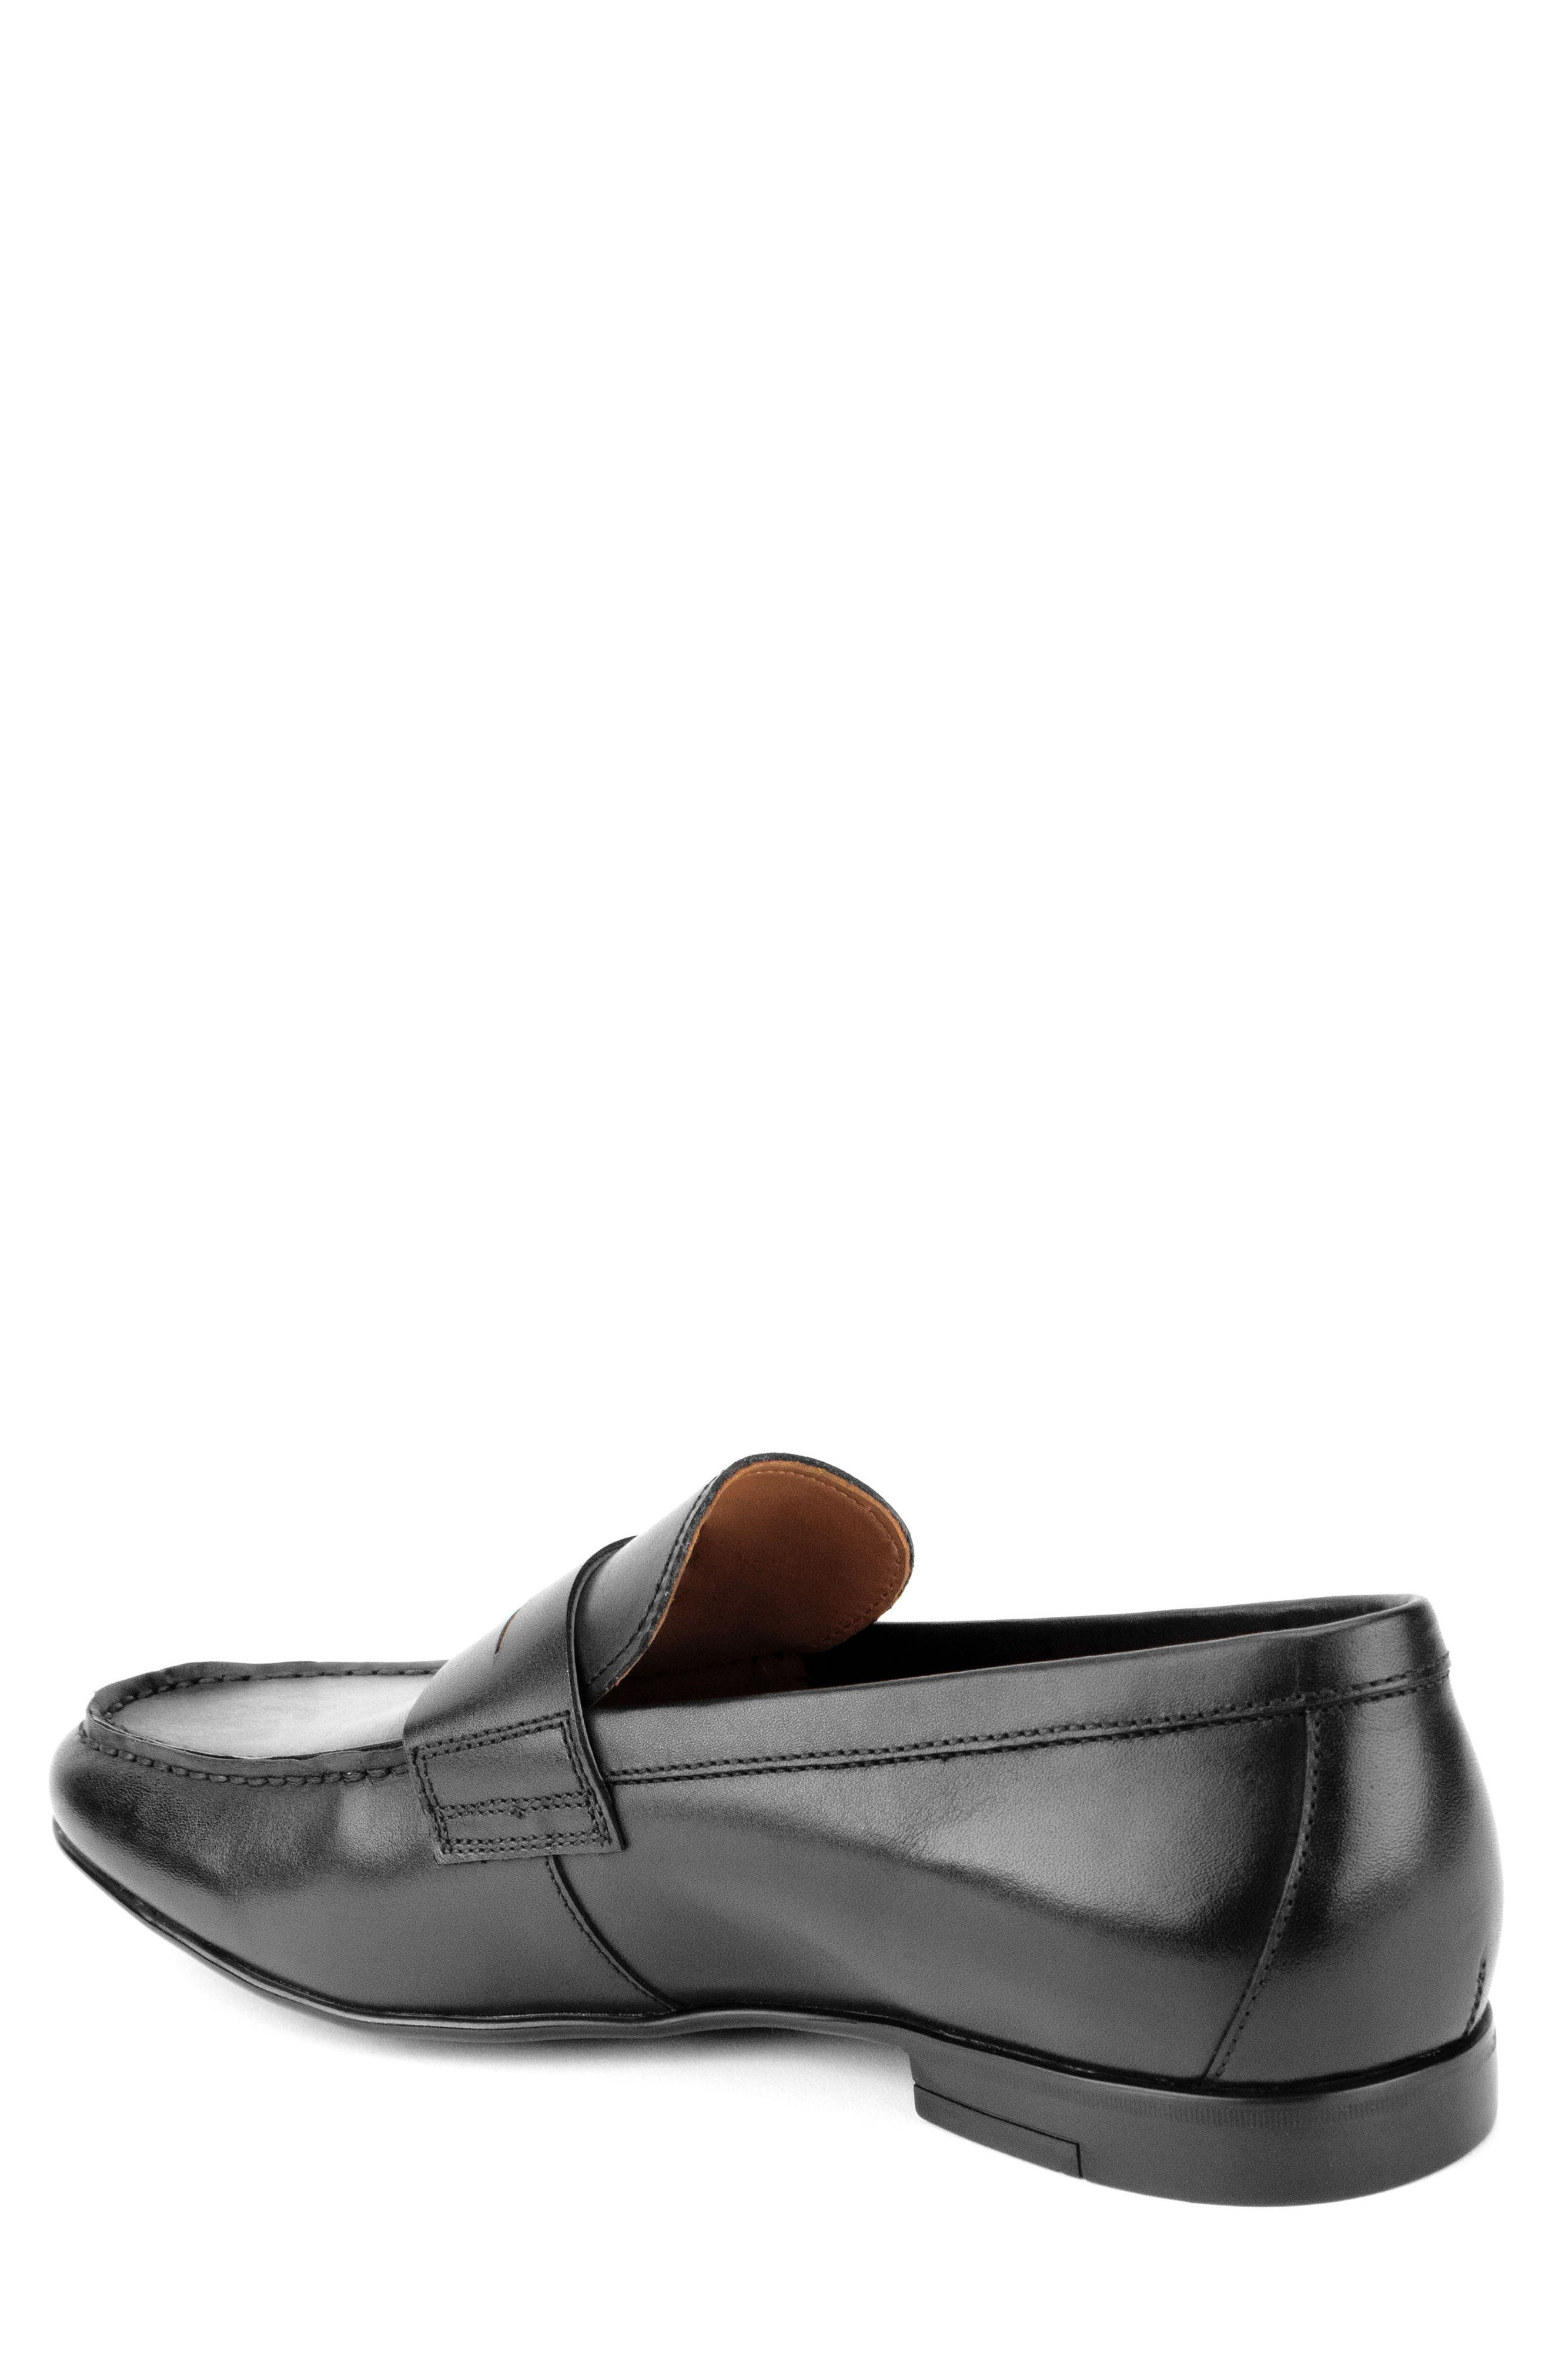 Connery Penny Loafer,                             Alternate thumbnail 2, color,                             BLACK LEATHER